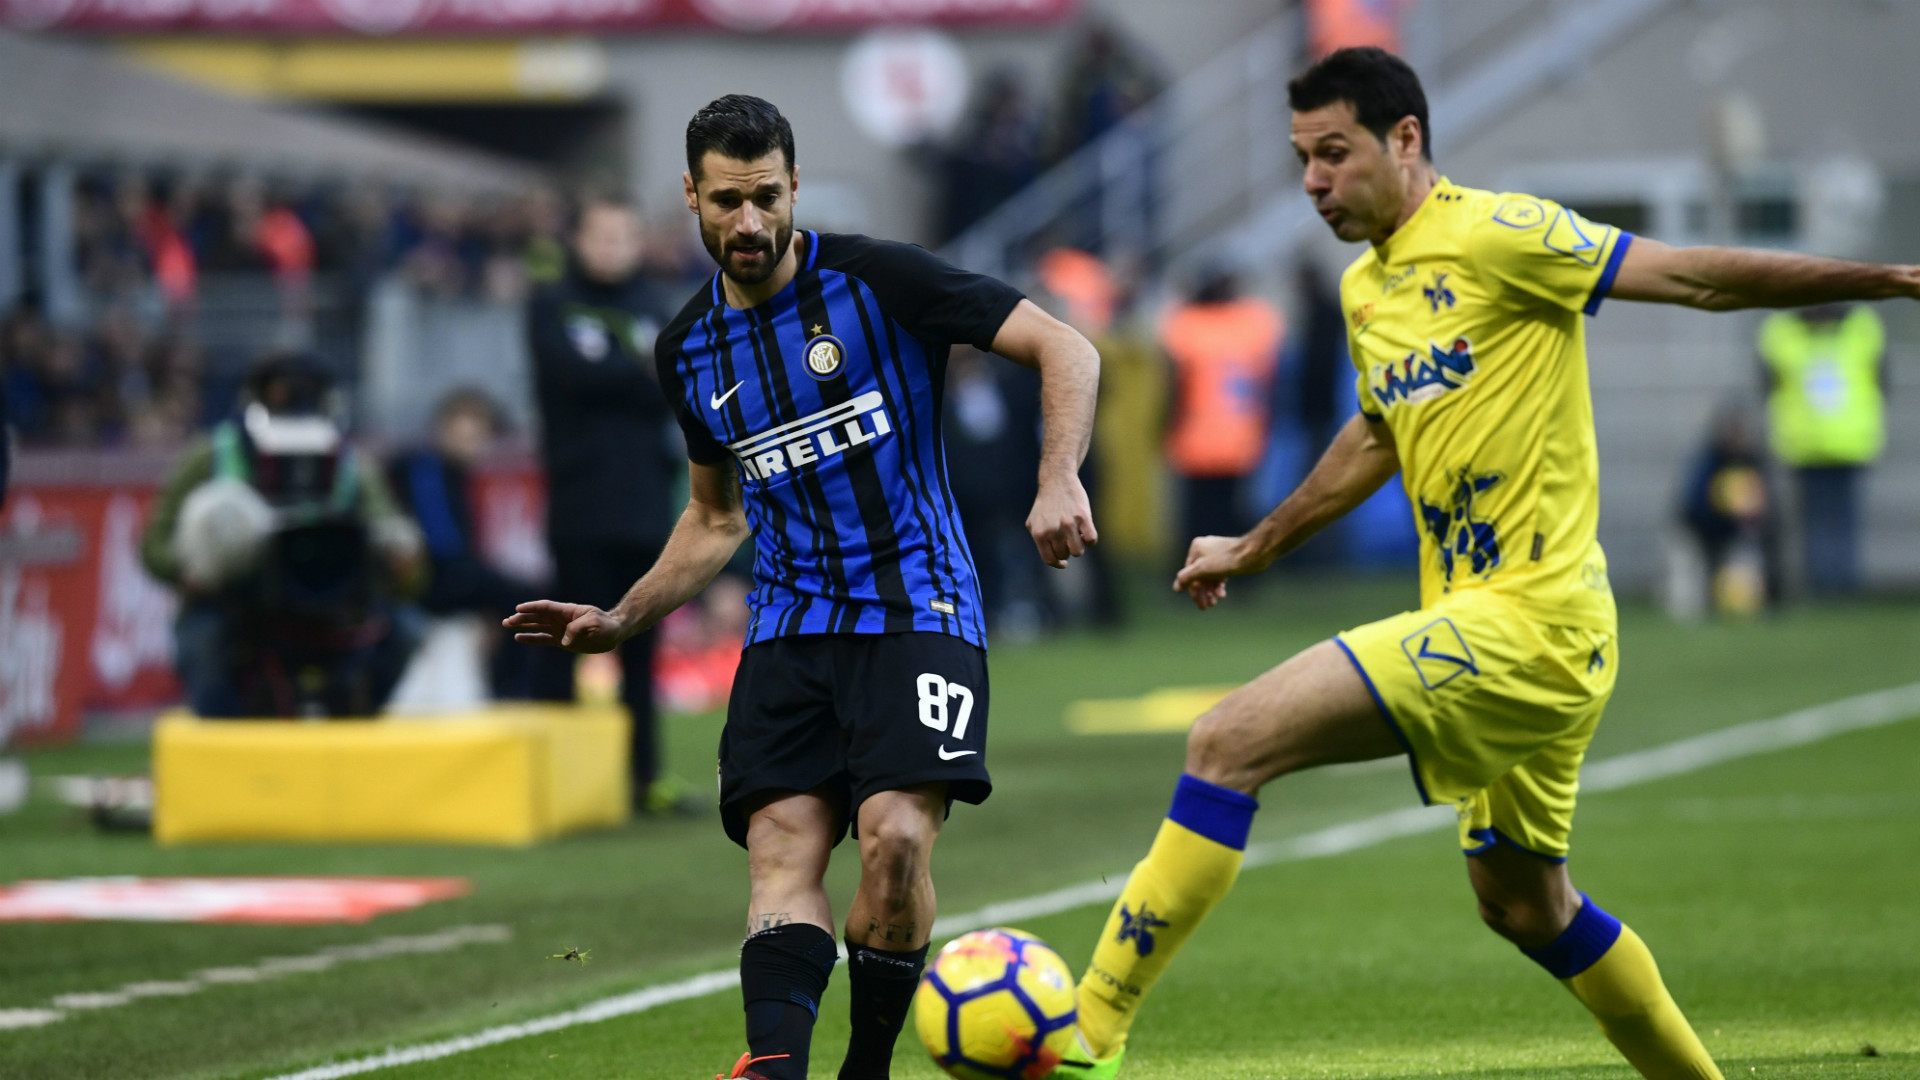 Antonio Candreva Massimo Gobbi Inter Chievo Serie A